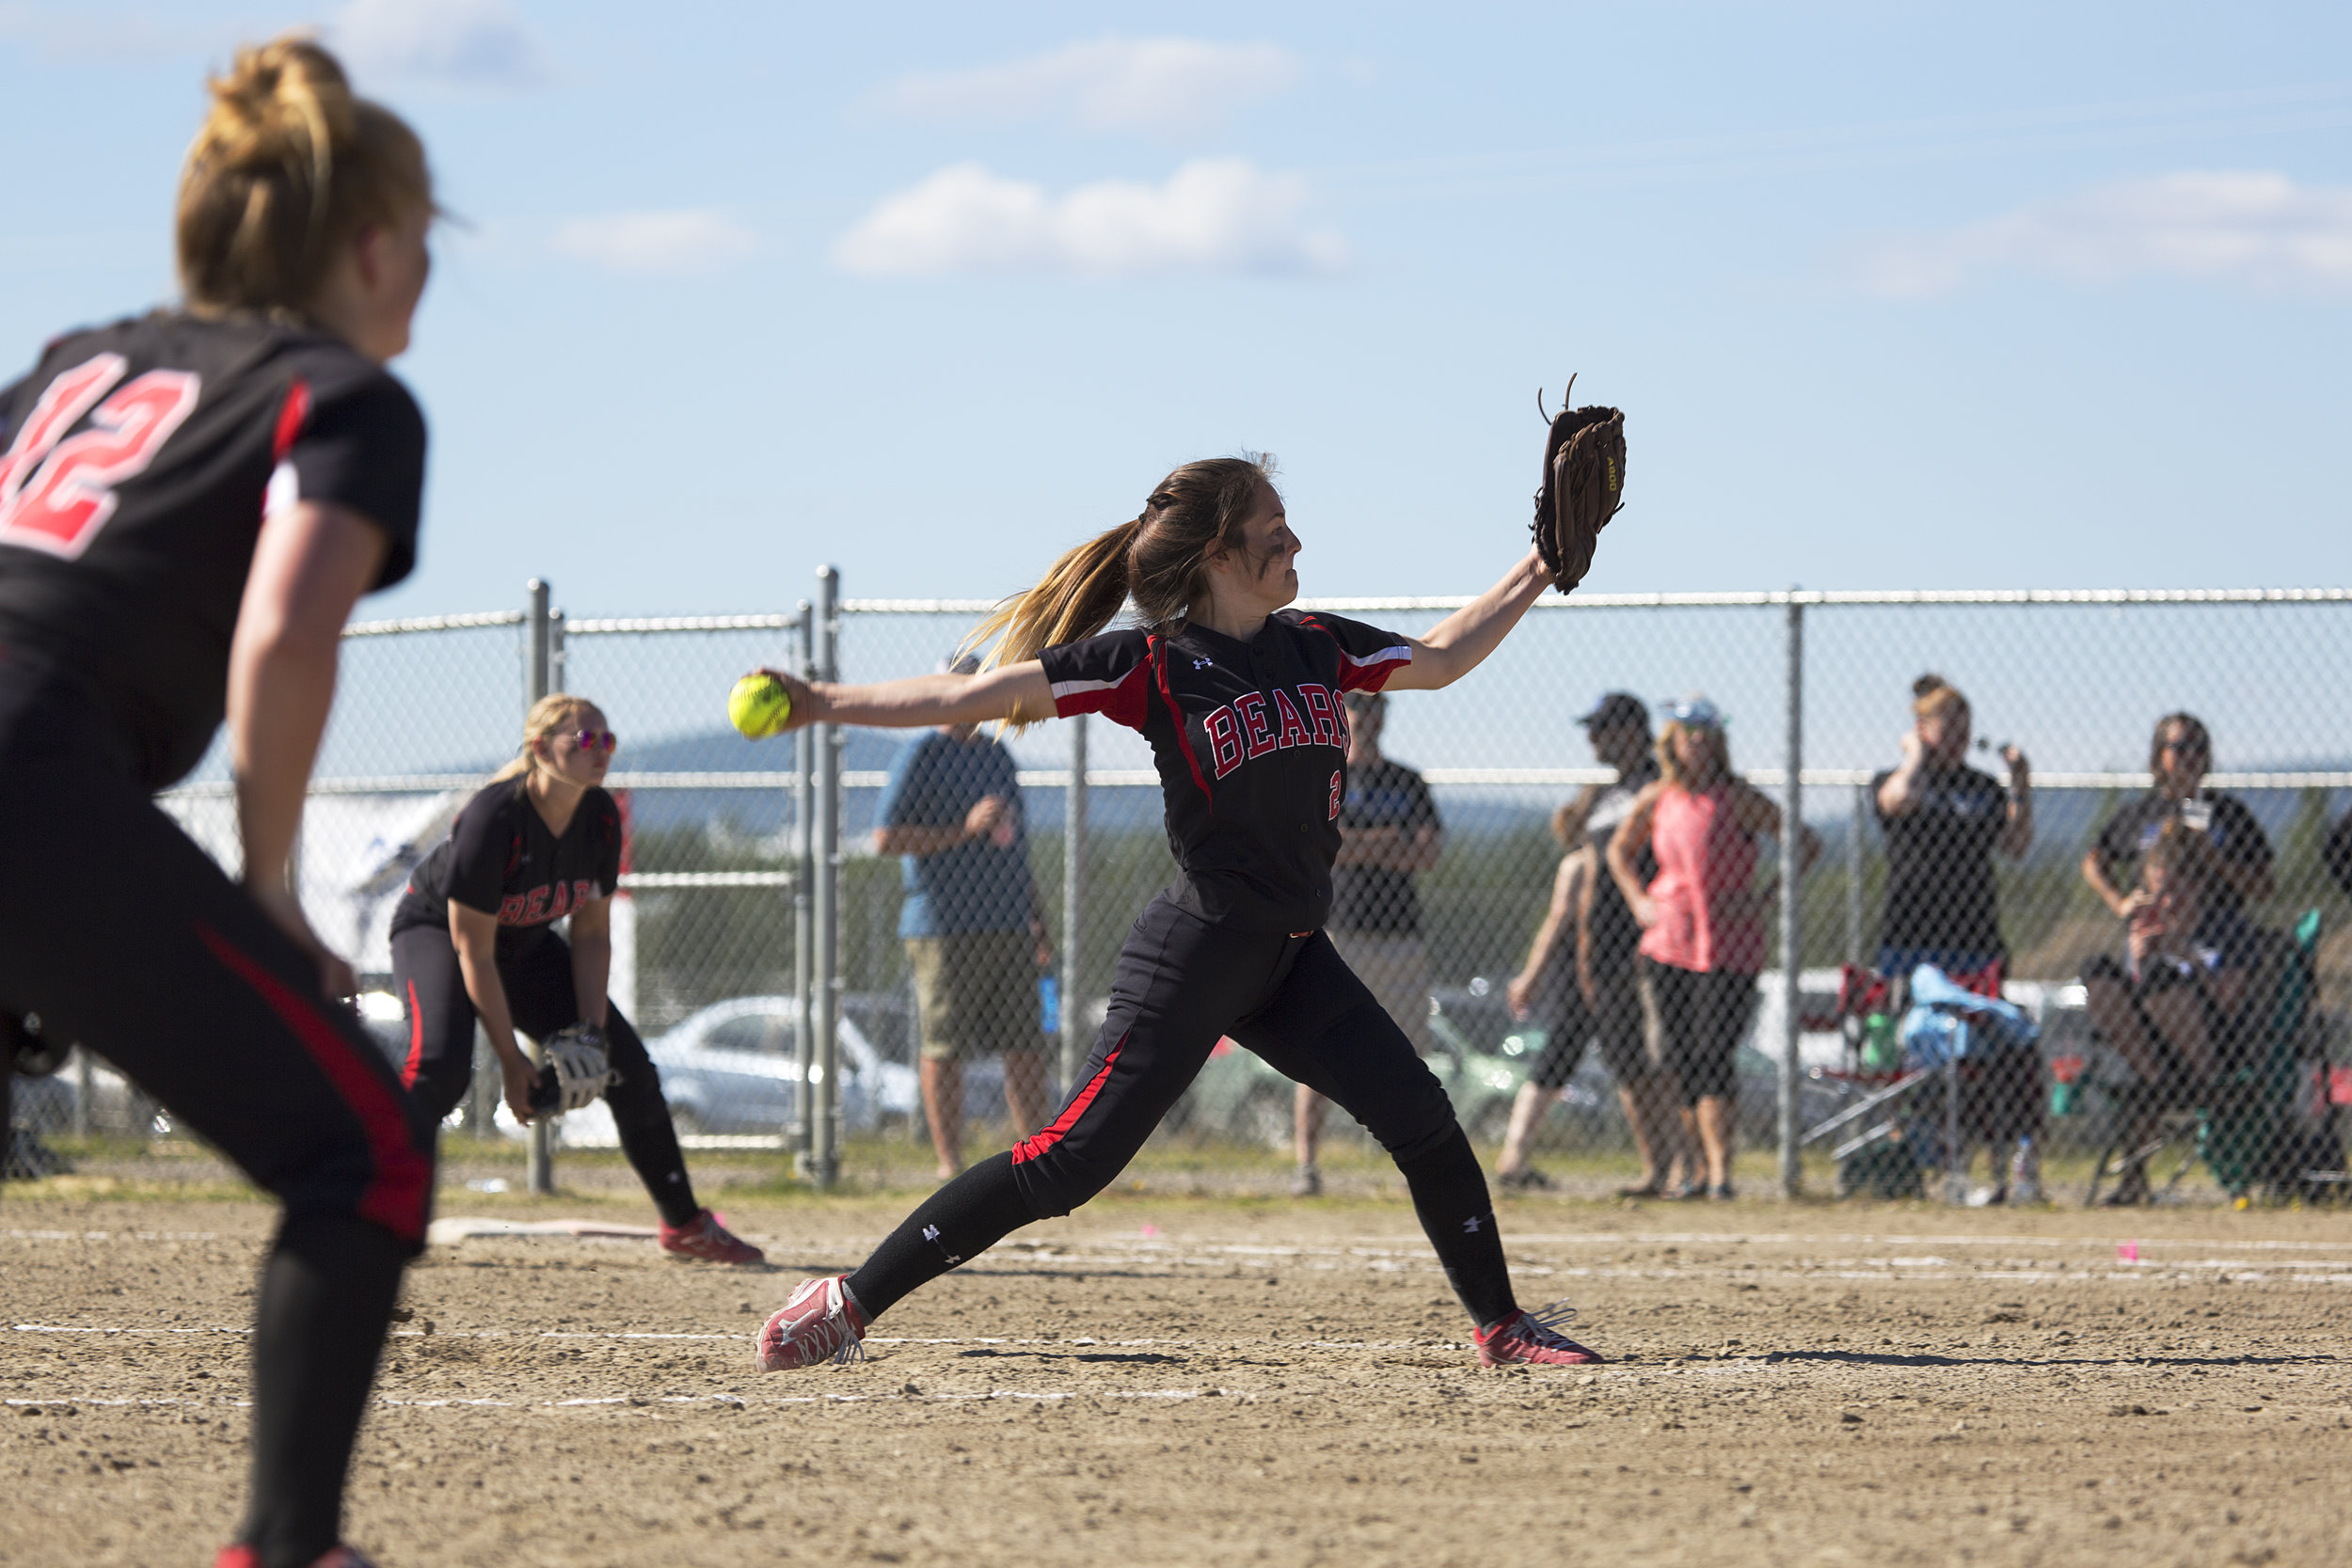 Juneau Douglas, Elisa Fabrello (2) winds up to pitch for the finals for the State Championship Softball game on Saturday, June 3rd against Thunder Mountain in the South Davis Park Complex in Fairbanks, AK. Sarah Manriquez/ Juneau Empire